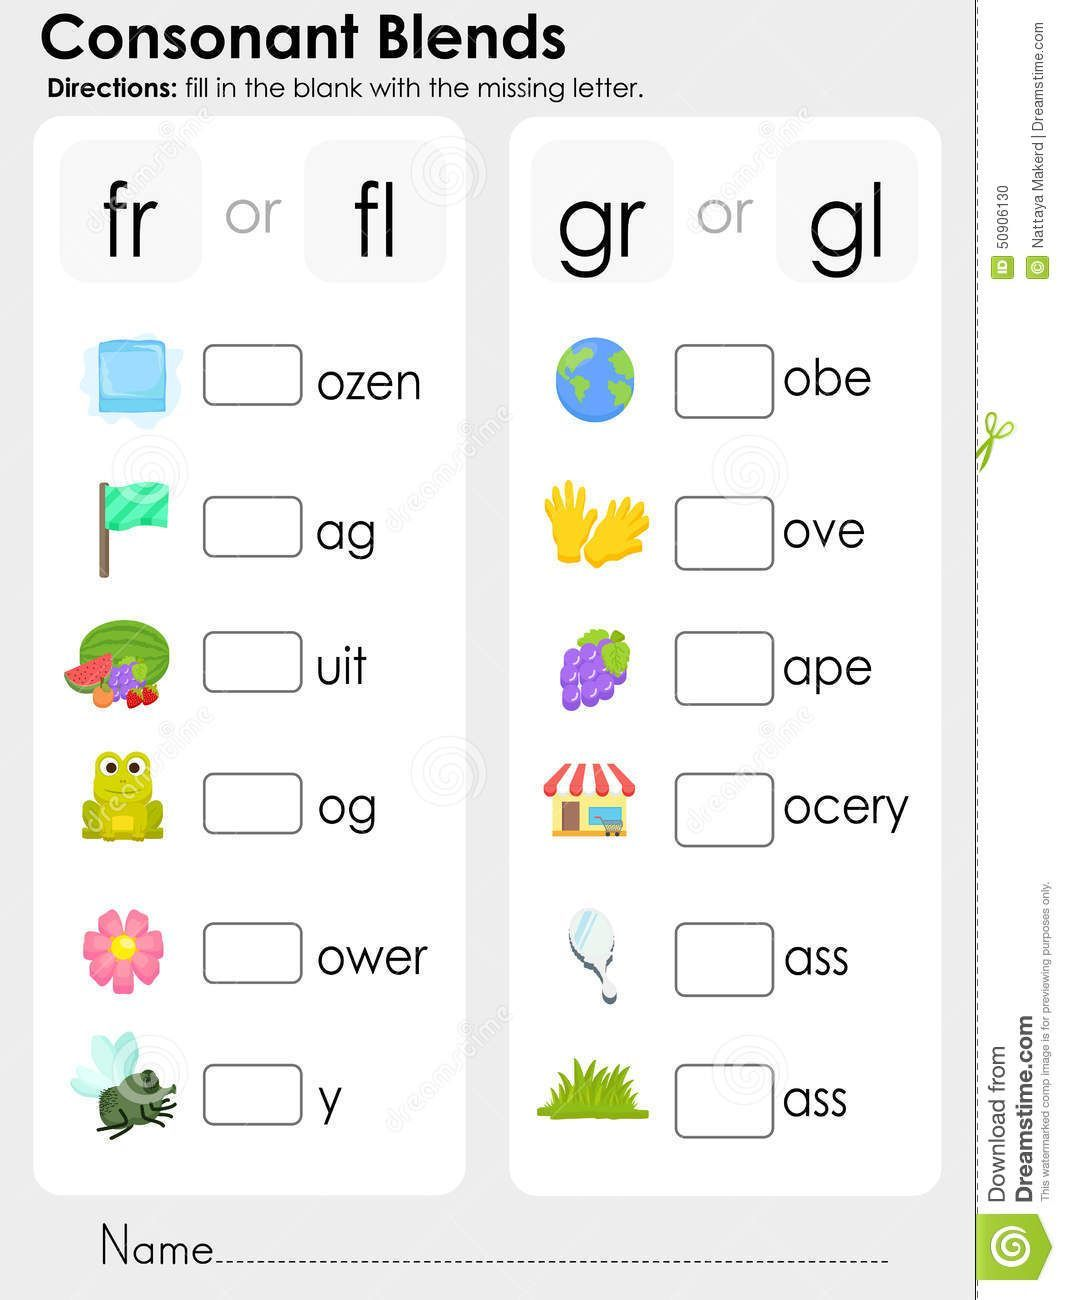 Consonant Blends Worksheets For Kindergarten Scalien For